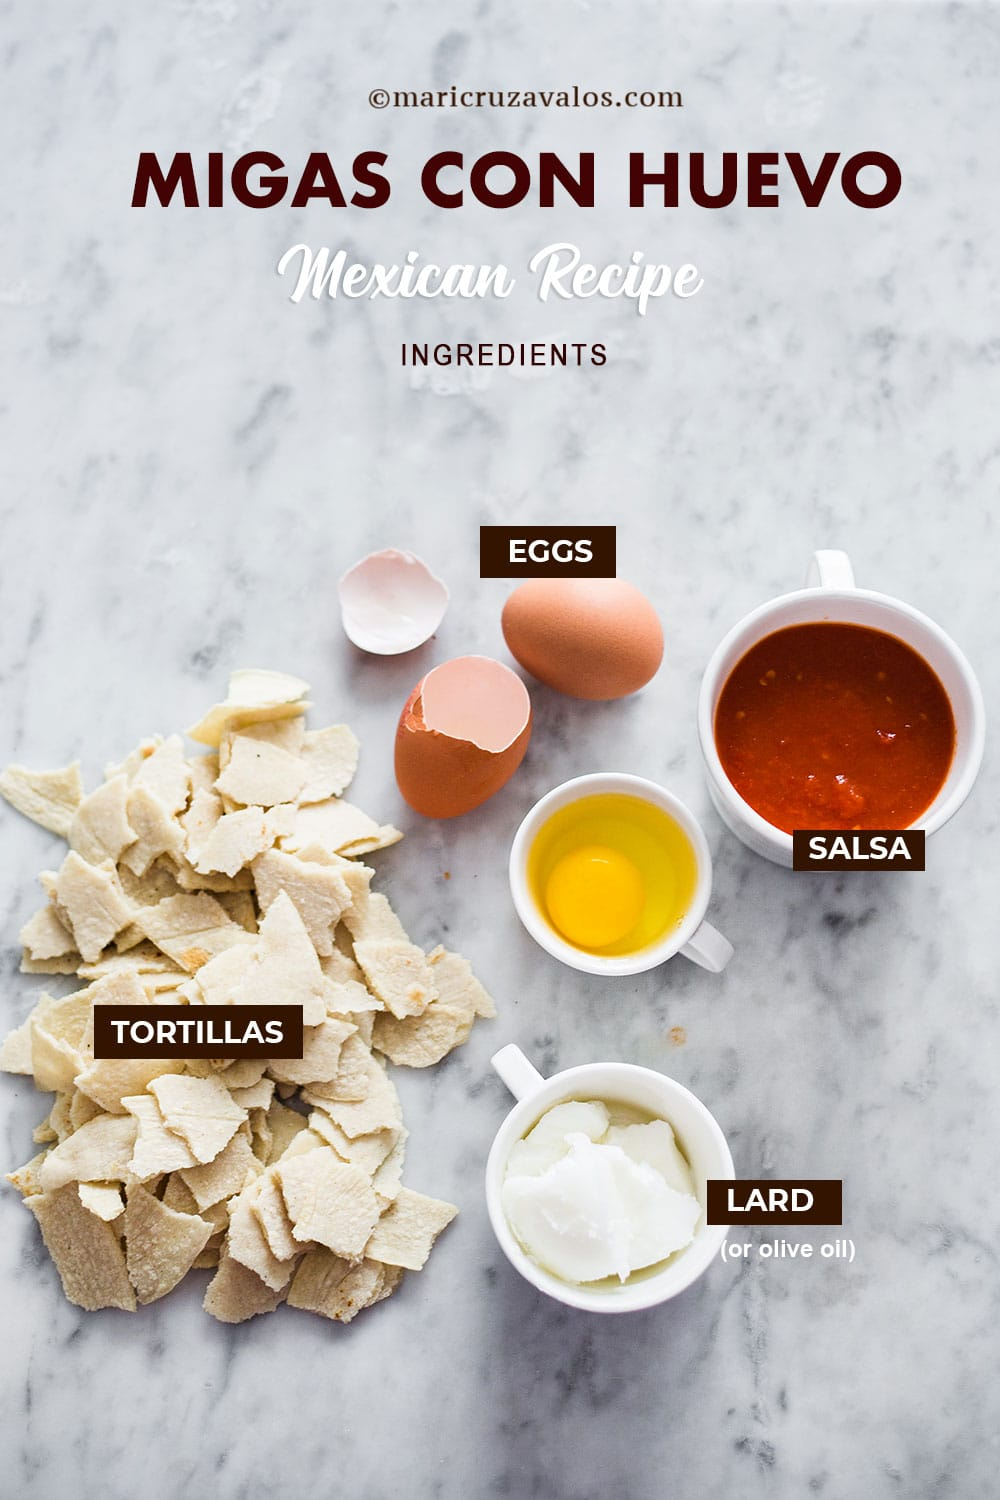 Migas con huevo ingredients labeled and displayed on a marble surface.